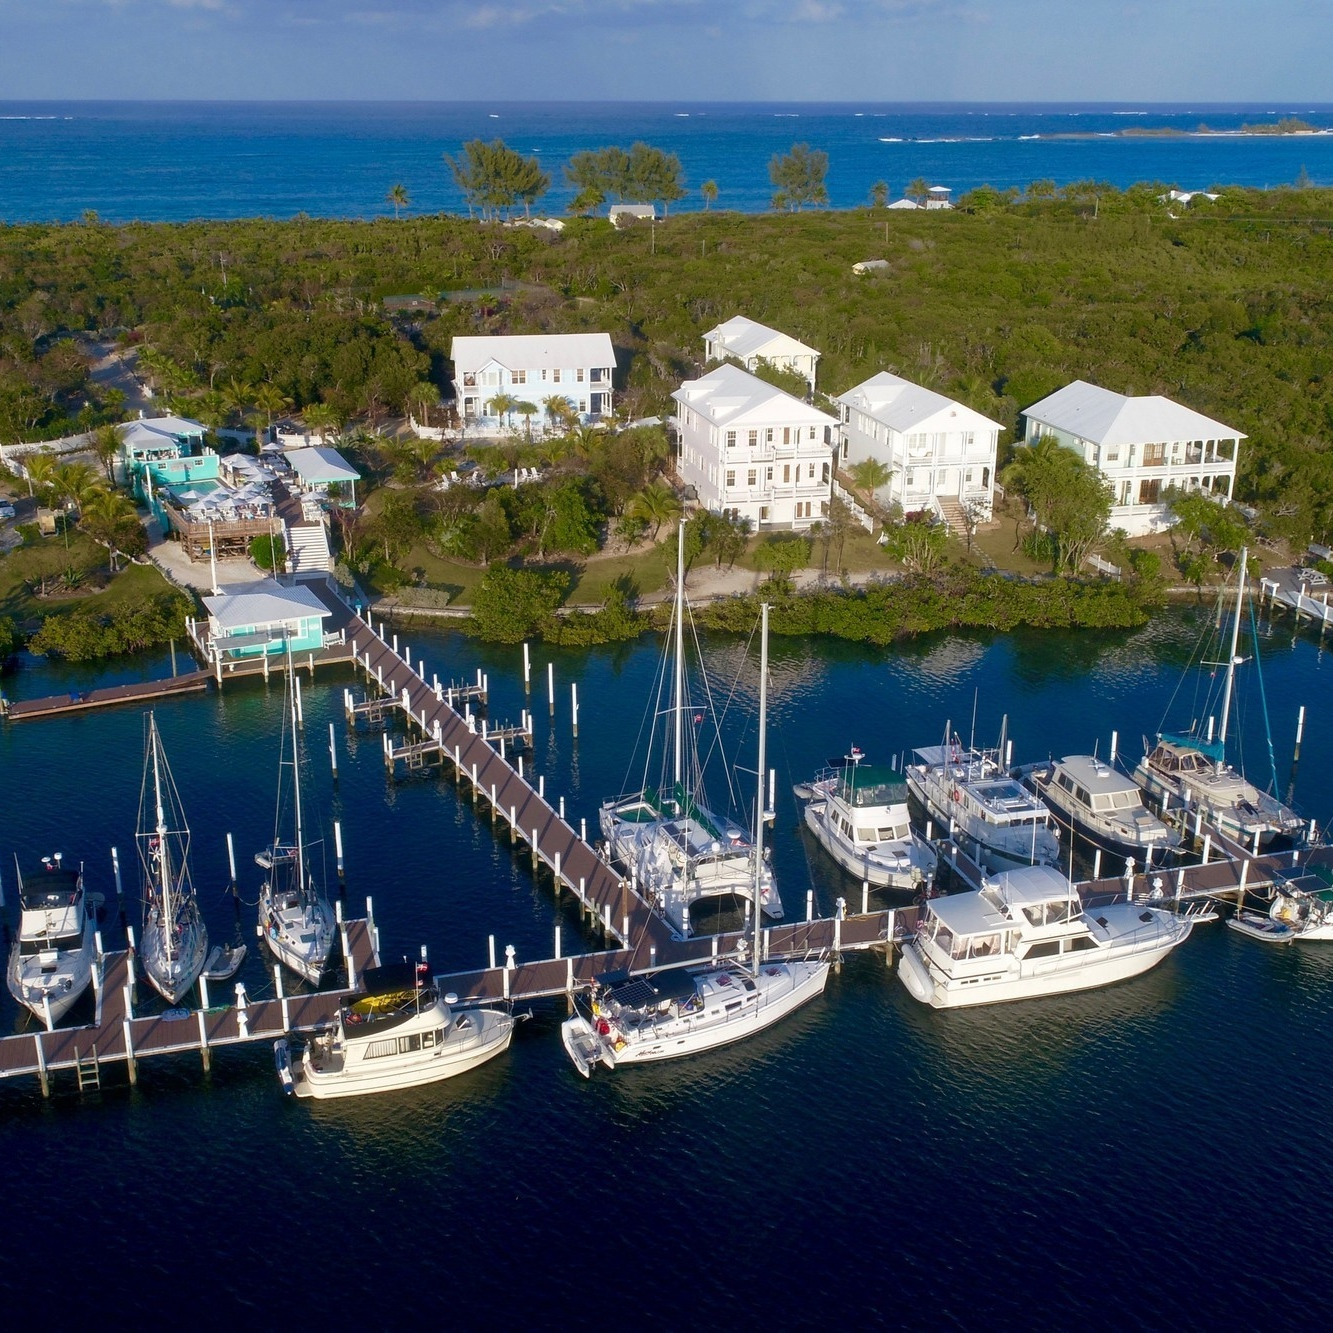 Best place to buy property in the bahamas: Leeward Yacht Club, Abaco, $6,950,000.